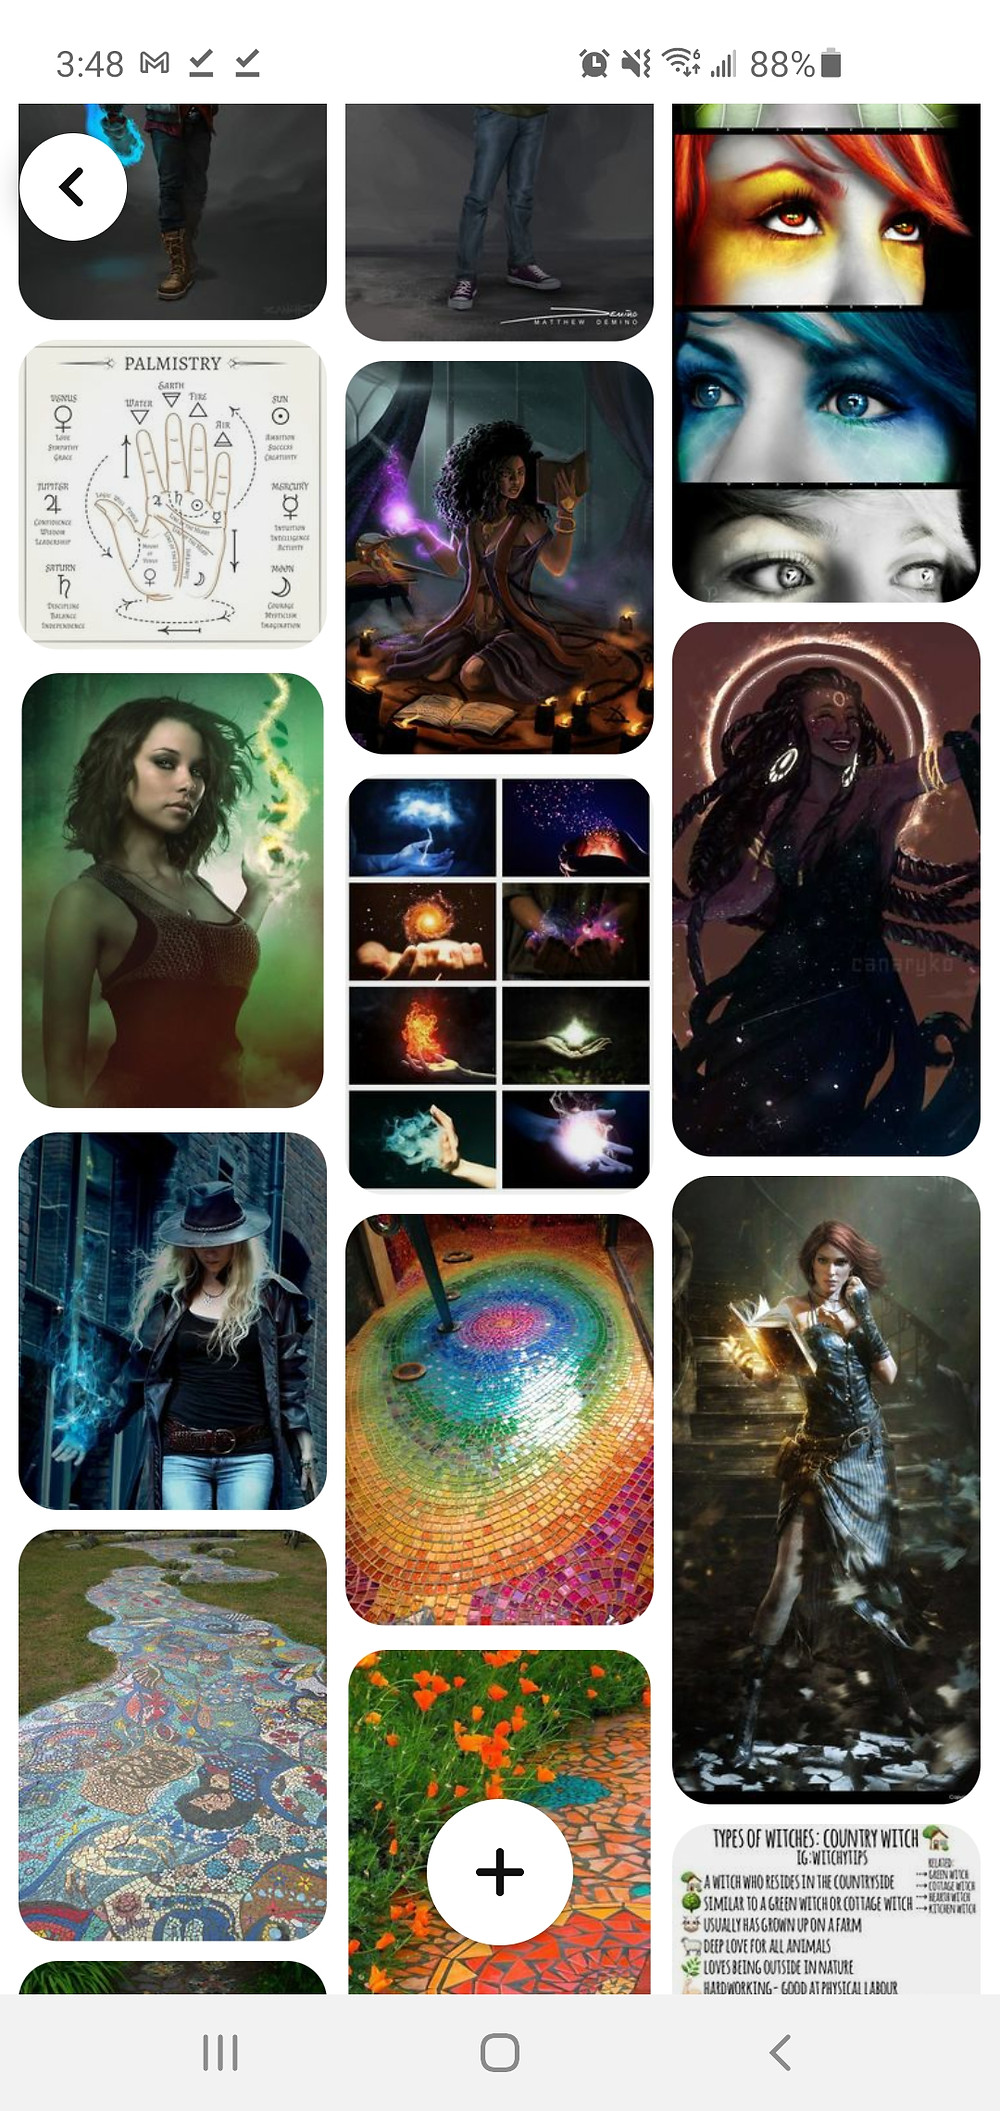 Image of Pinterest board for Unearthly Magic